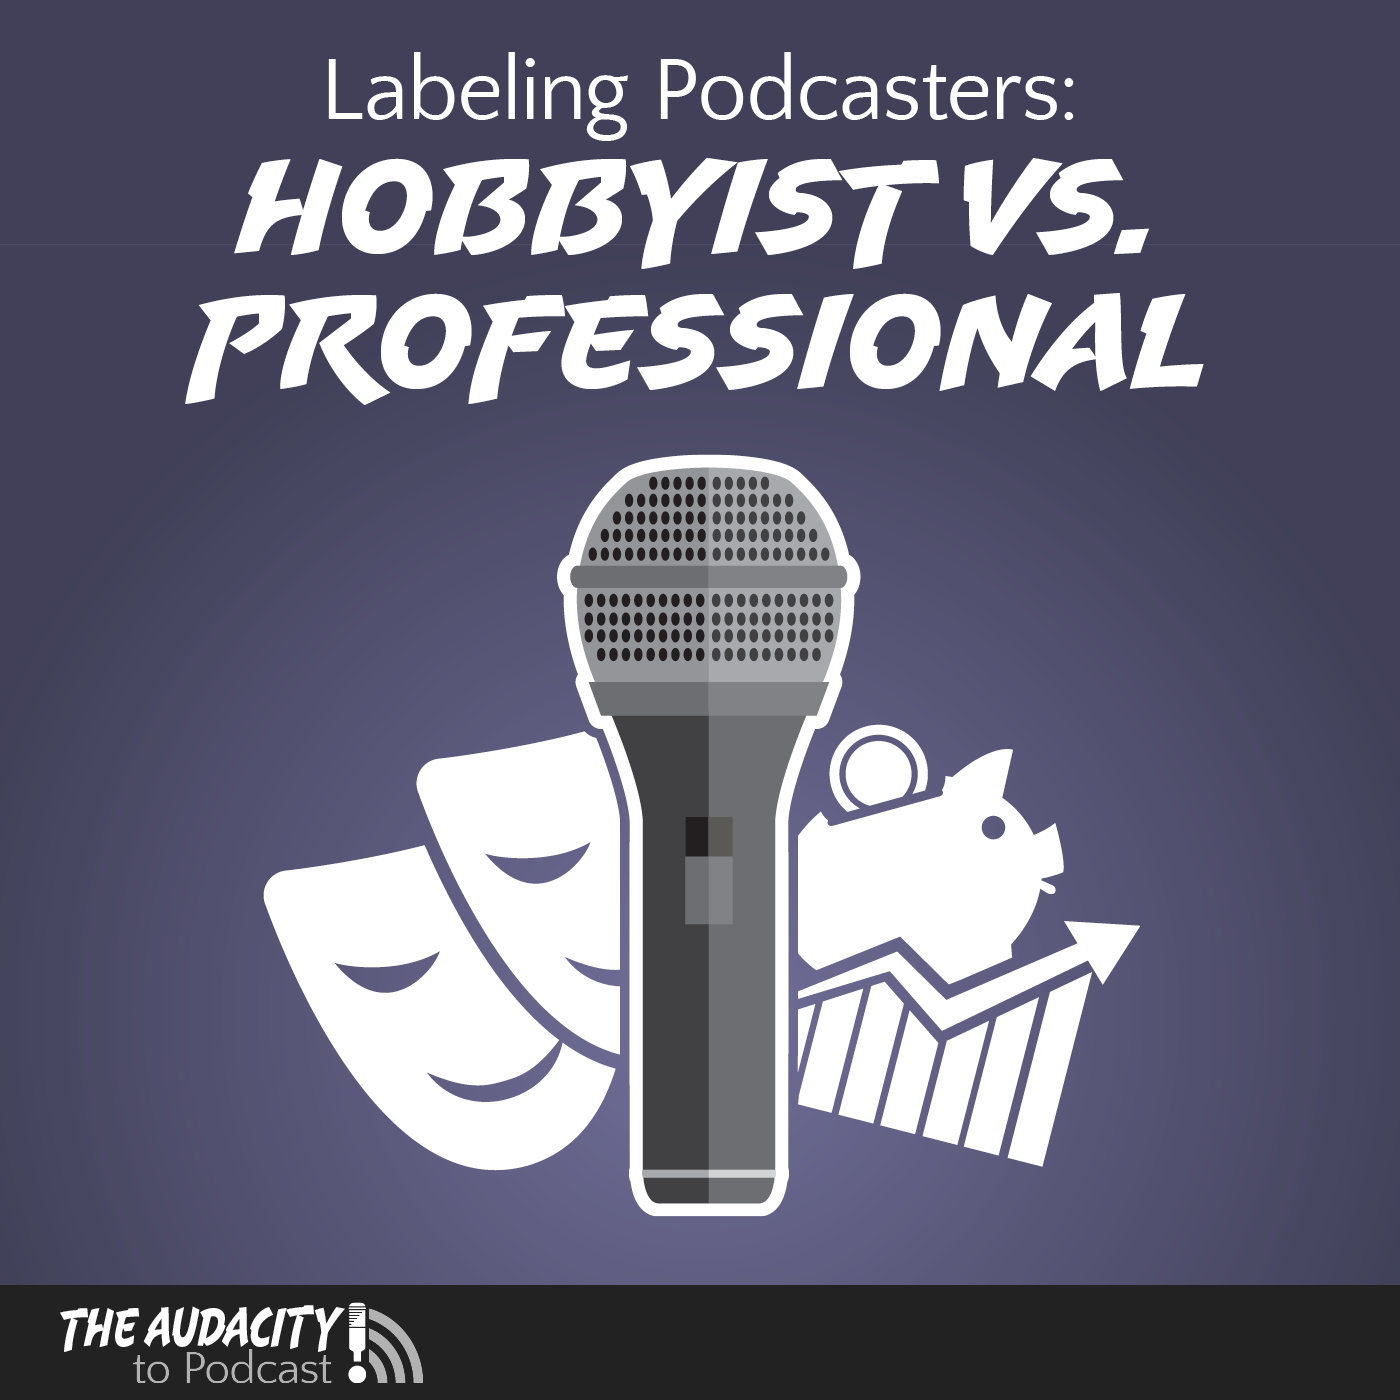 Labeling Podcasters: Hobbyist vs. Professional